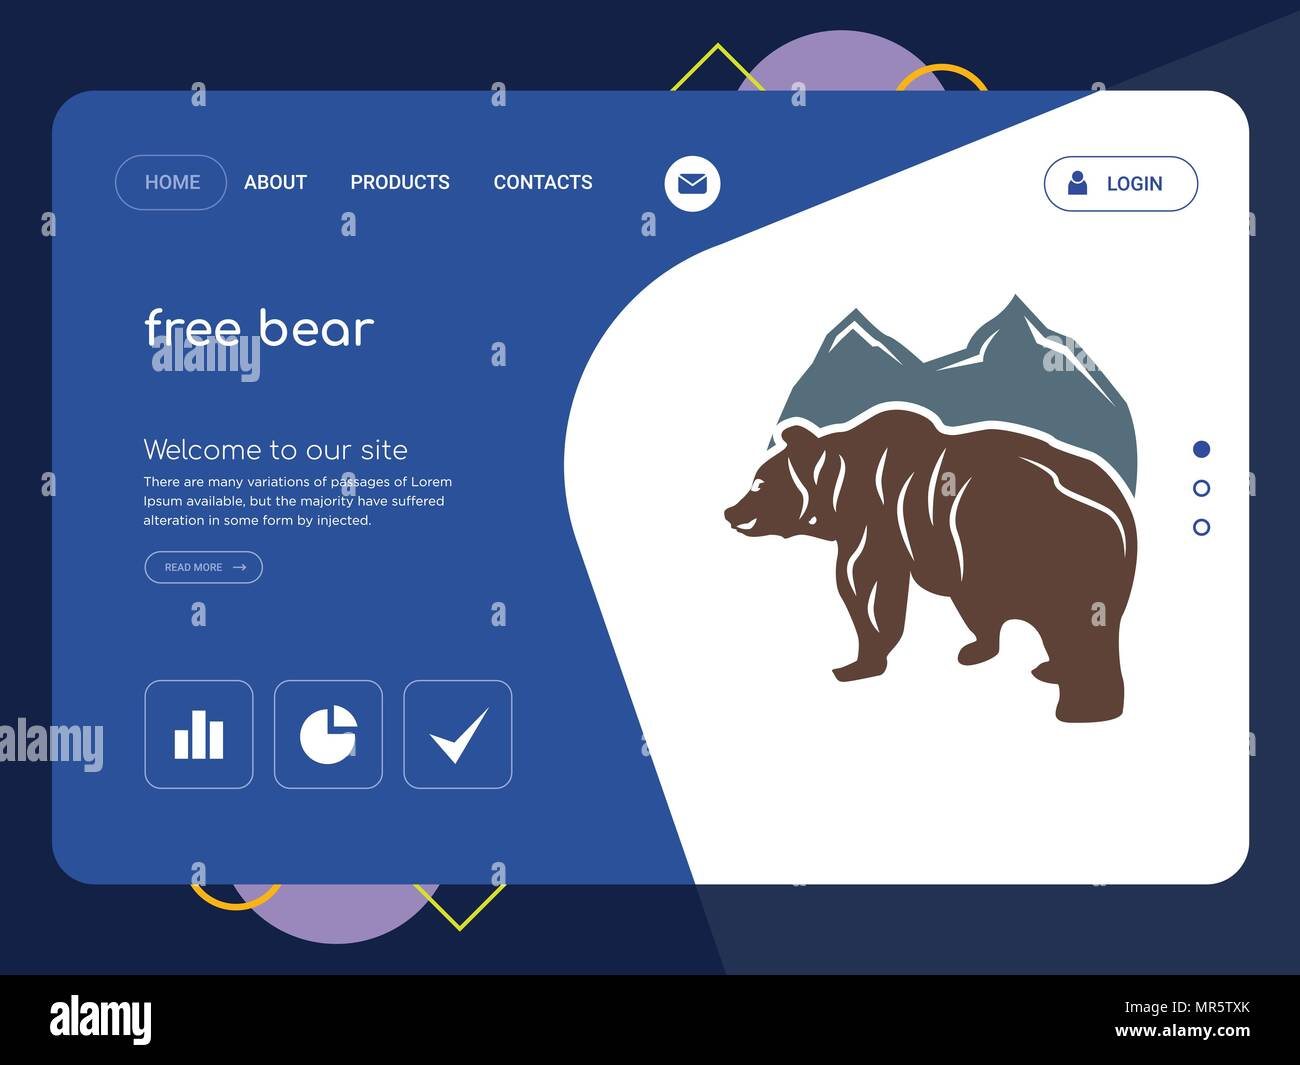 quality one page free bear website template vector eps modern web